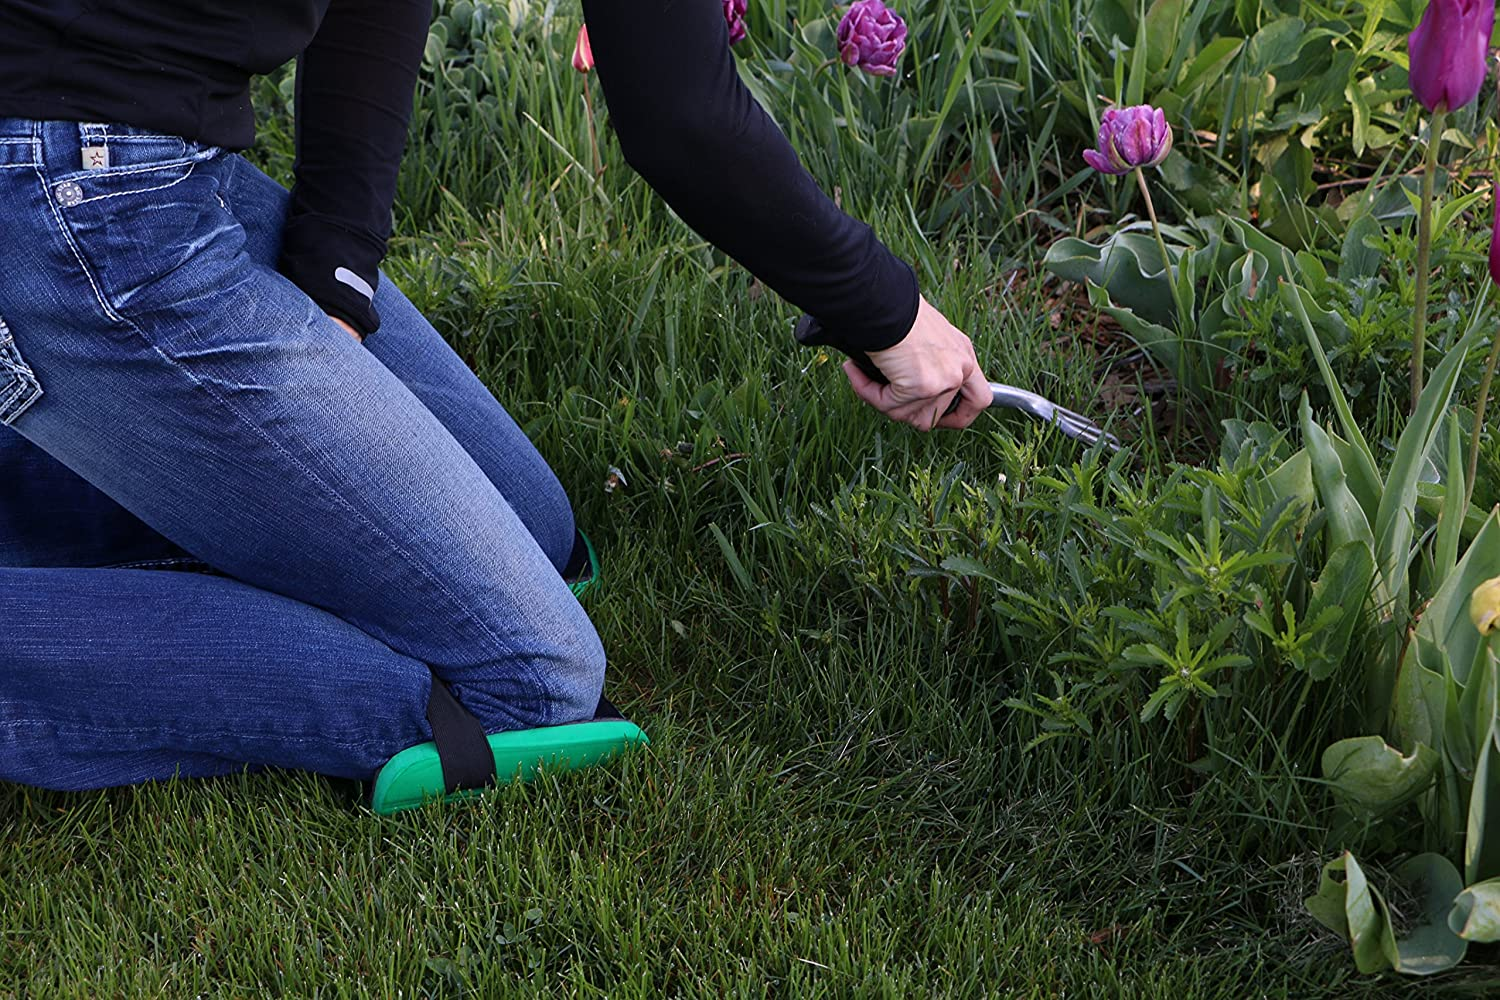 Protect your knees while doing your gardening with knee pads.